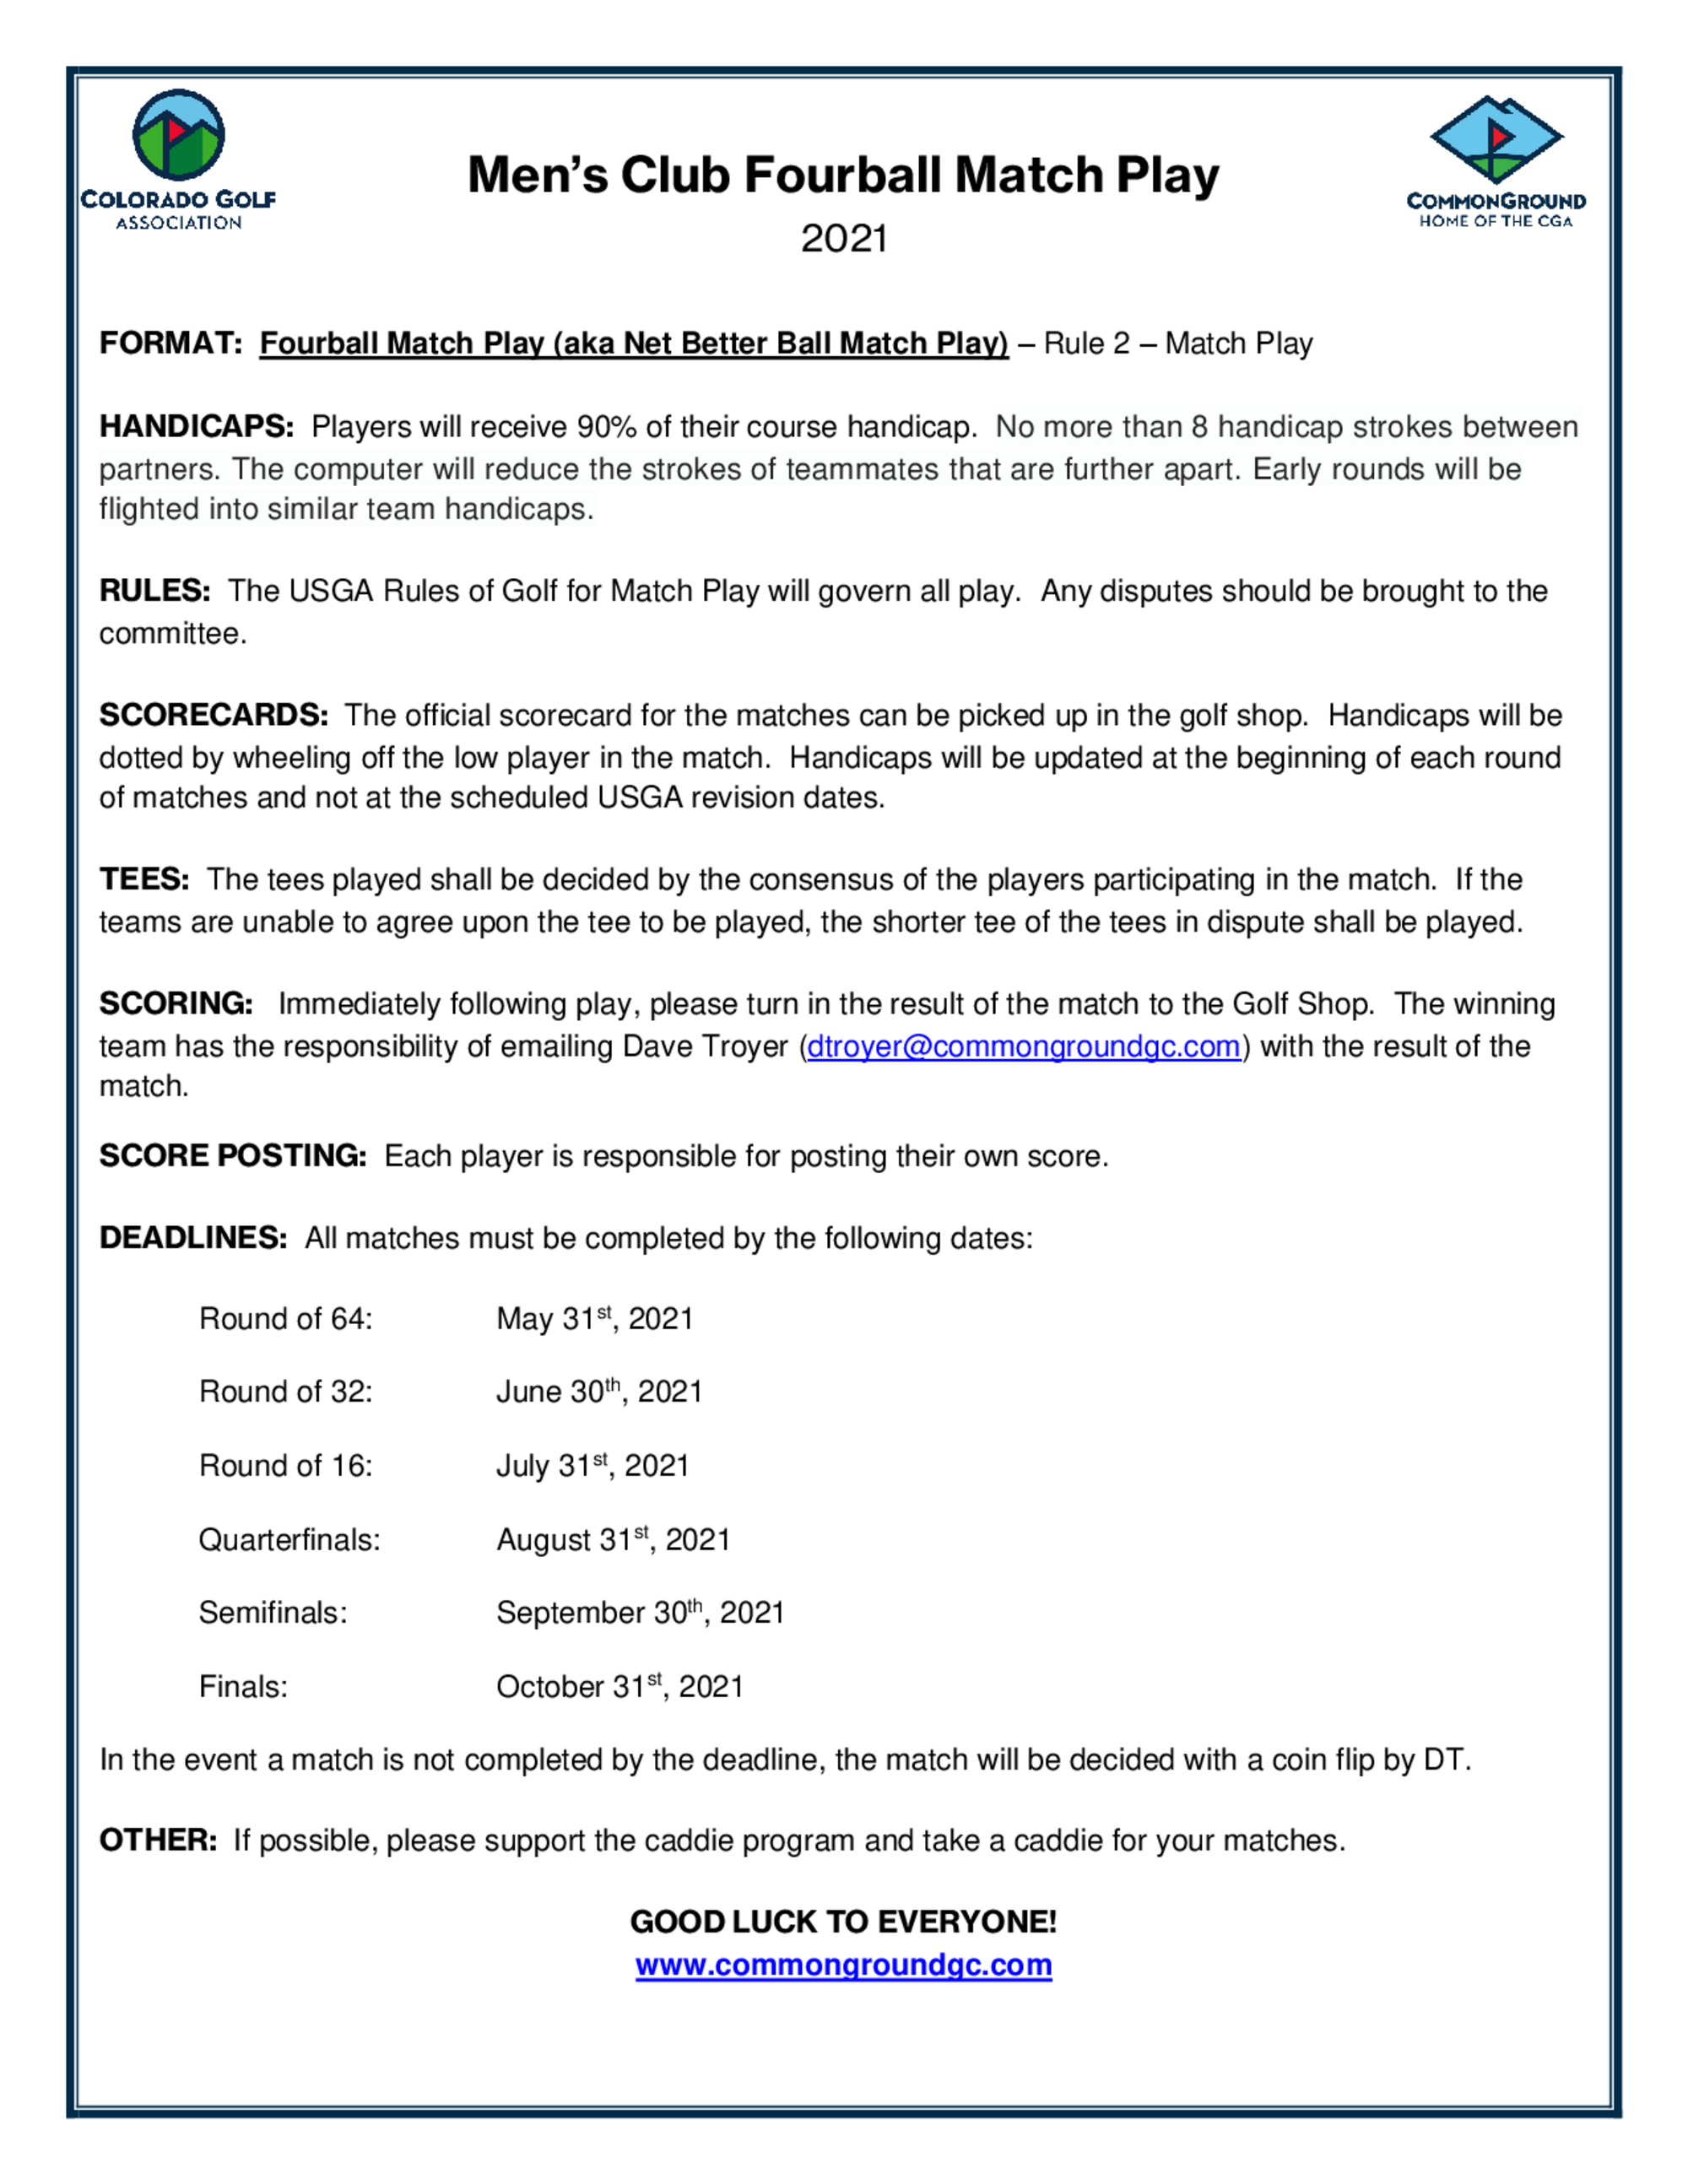 Rules and format fourball match play   2021 1